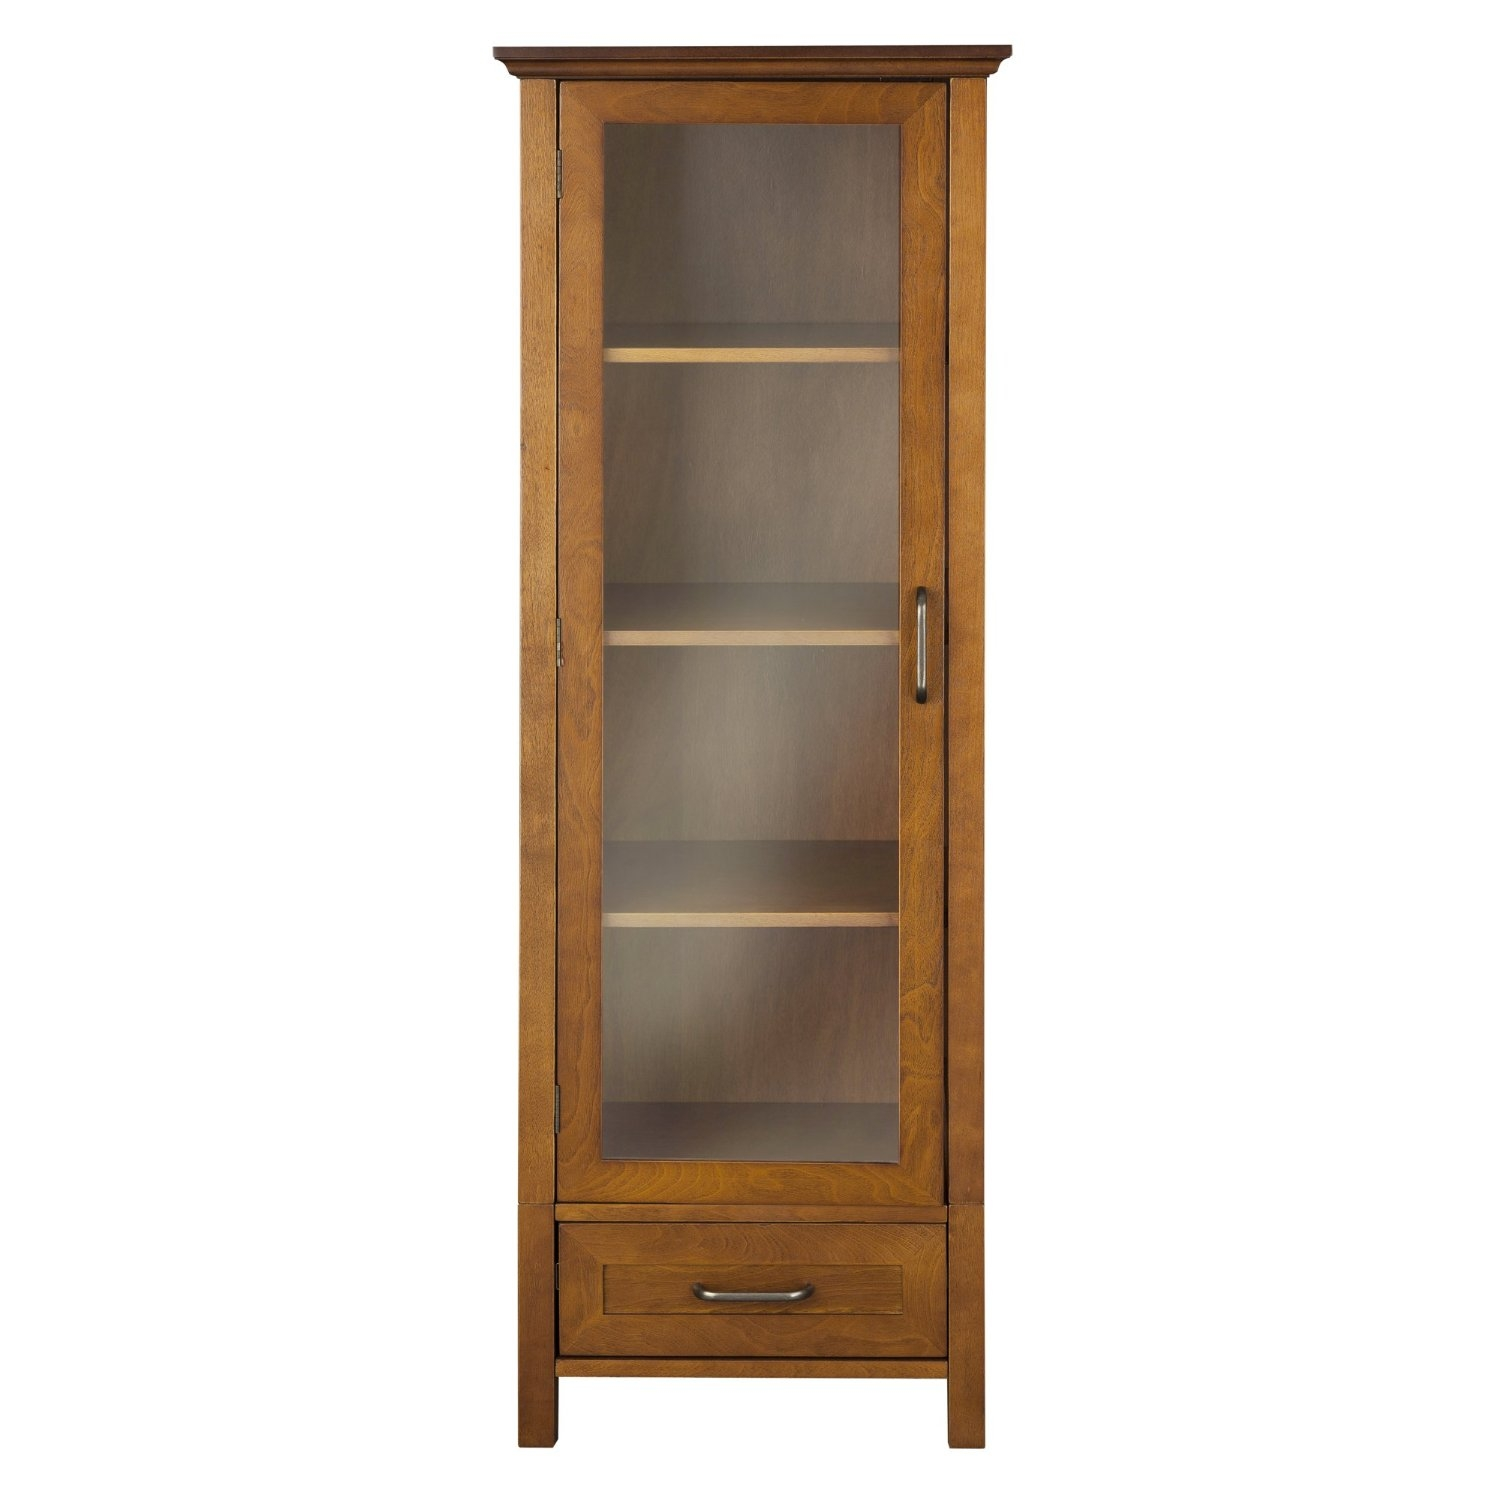 Excellent Oak Finish Linen Tower Glass Door Bathroom Storage Cabinet w  FV72